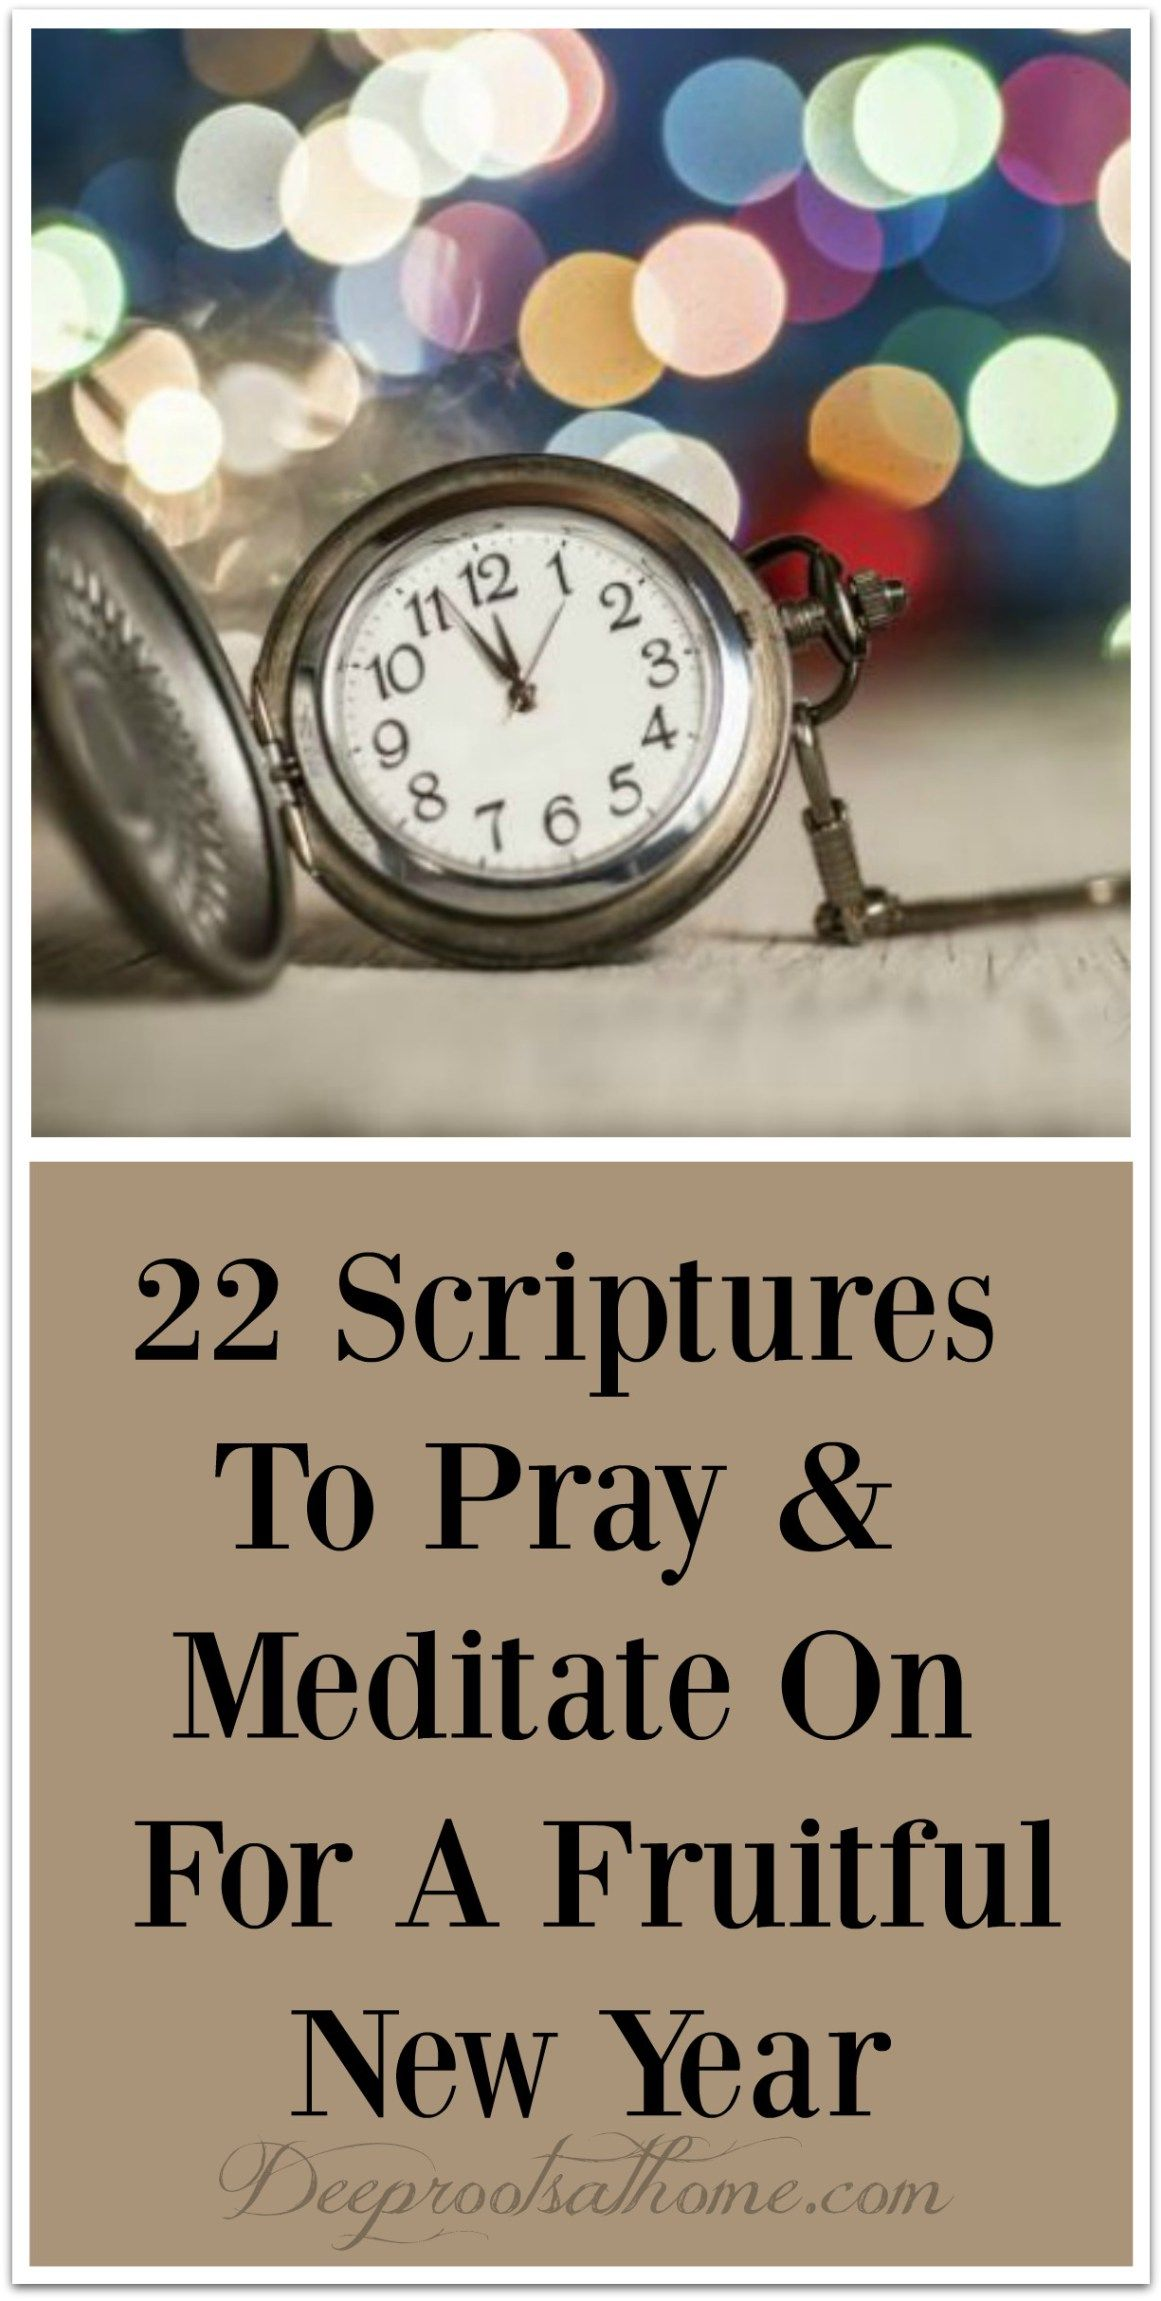 20 Scriptures To Pray & Meditate On For A Fruitful New Year | Bible ...